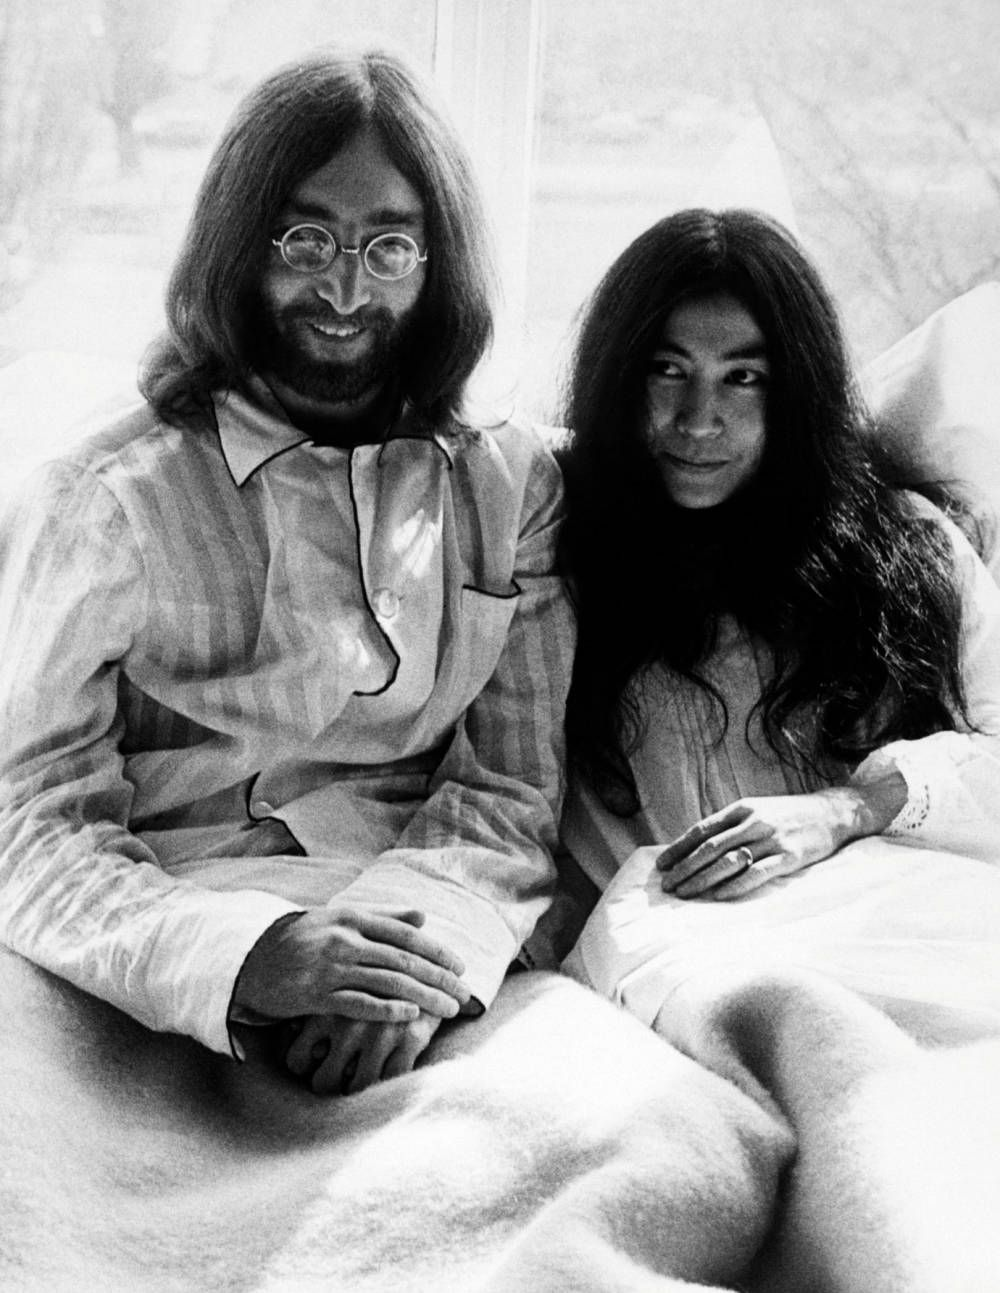 John Lennon And Yoko Ono In Their Pjs At Their Bed In At The Amsterdam Hilton March 25 1969 John Lennon And Yoko John Lennon Yoko Ono John Lennon